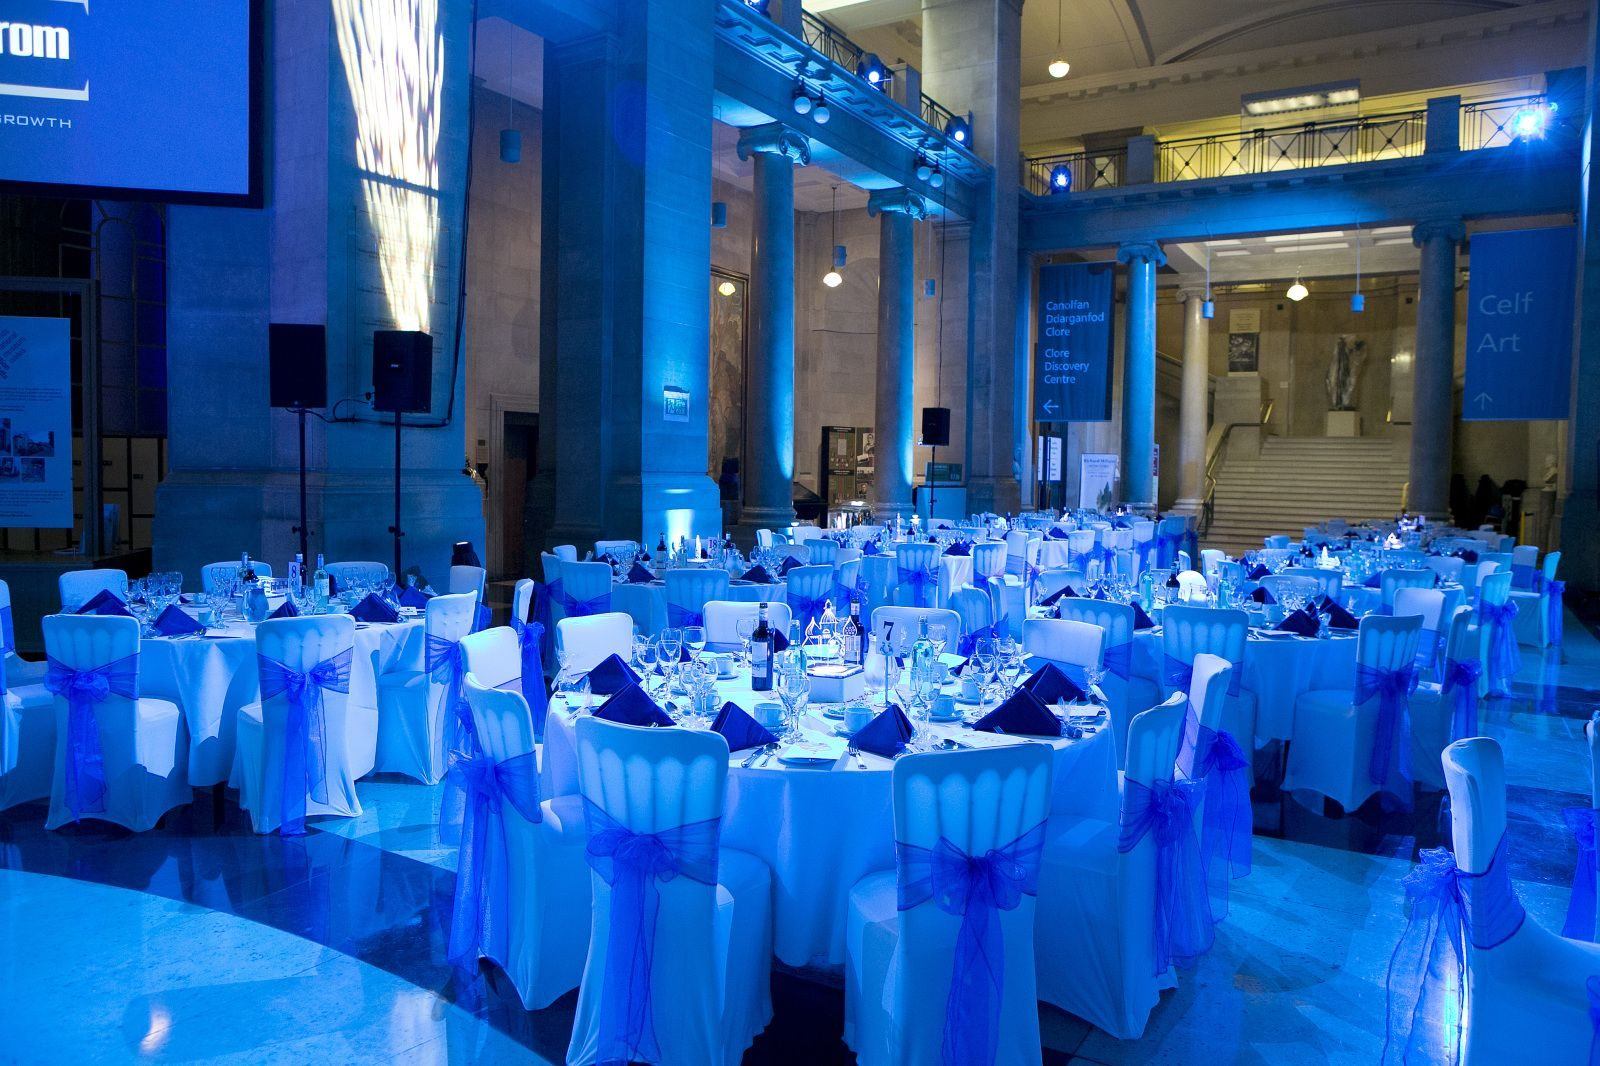 Wales Corporate Travel Events, National Museum, Cardiff, Wales